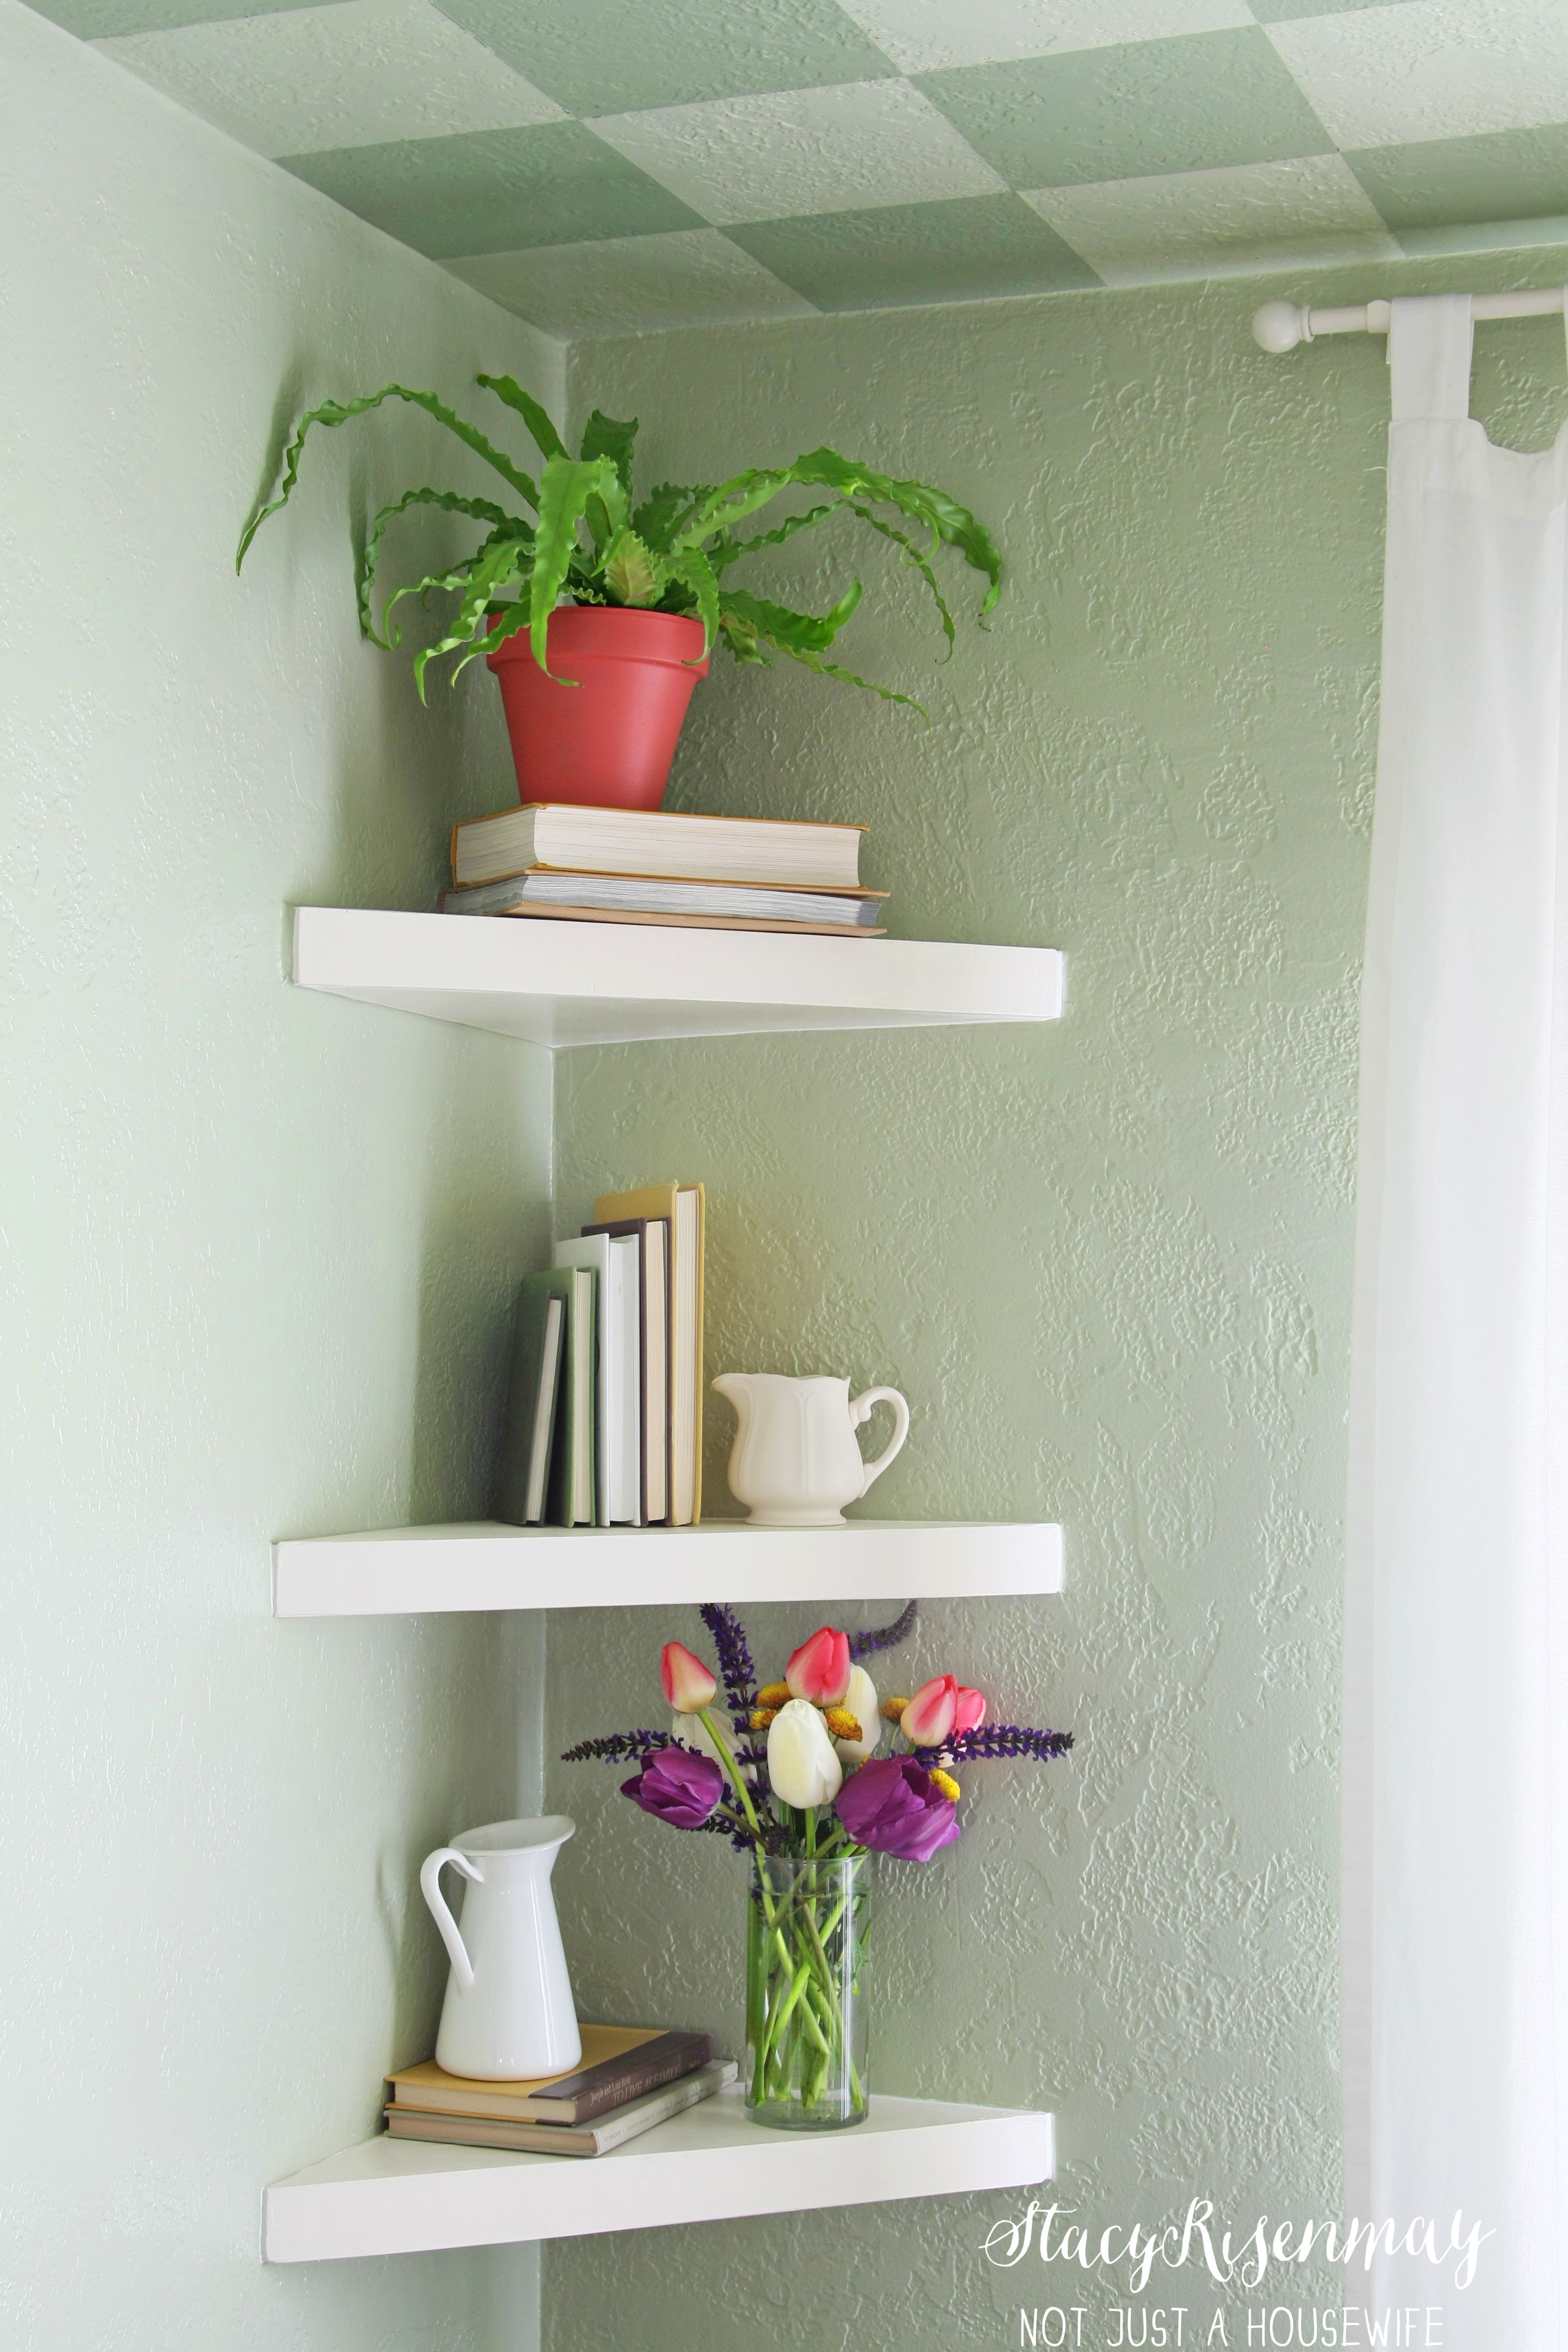 10 Different Ways To Style Floating Shelves Floating Shelves Living Room Decorating Shelves Floating Corner Shelves